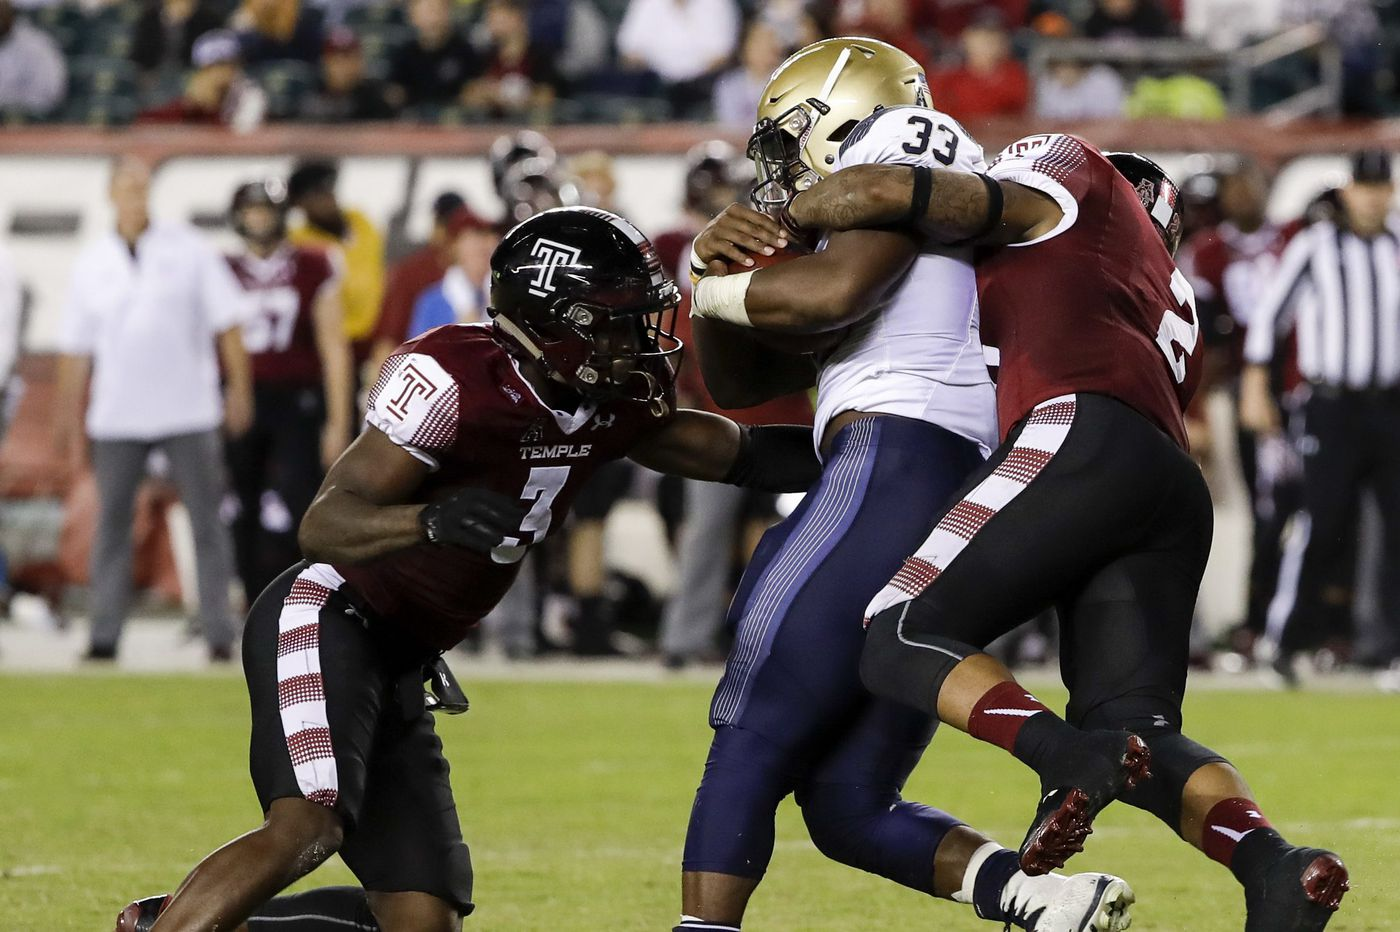 Delvon Randall headlines the Owls secondary | Temple defensive backs preview